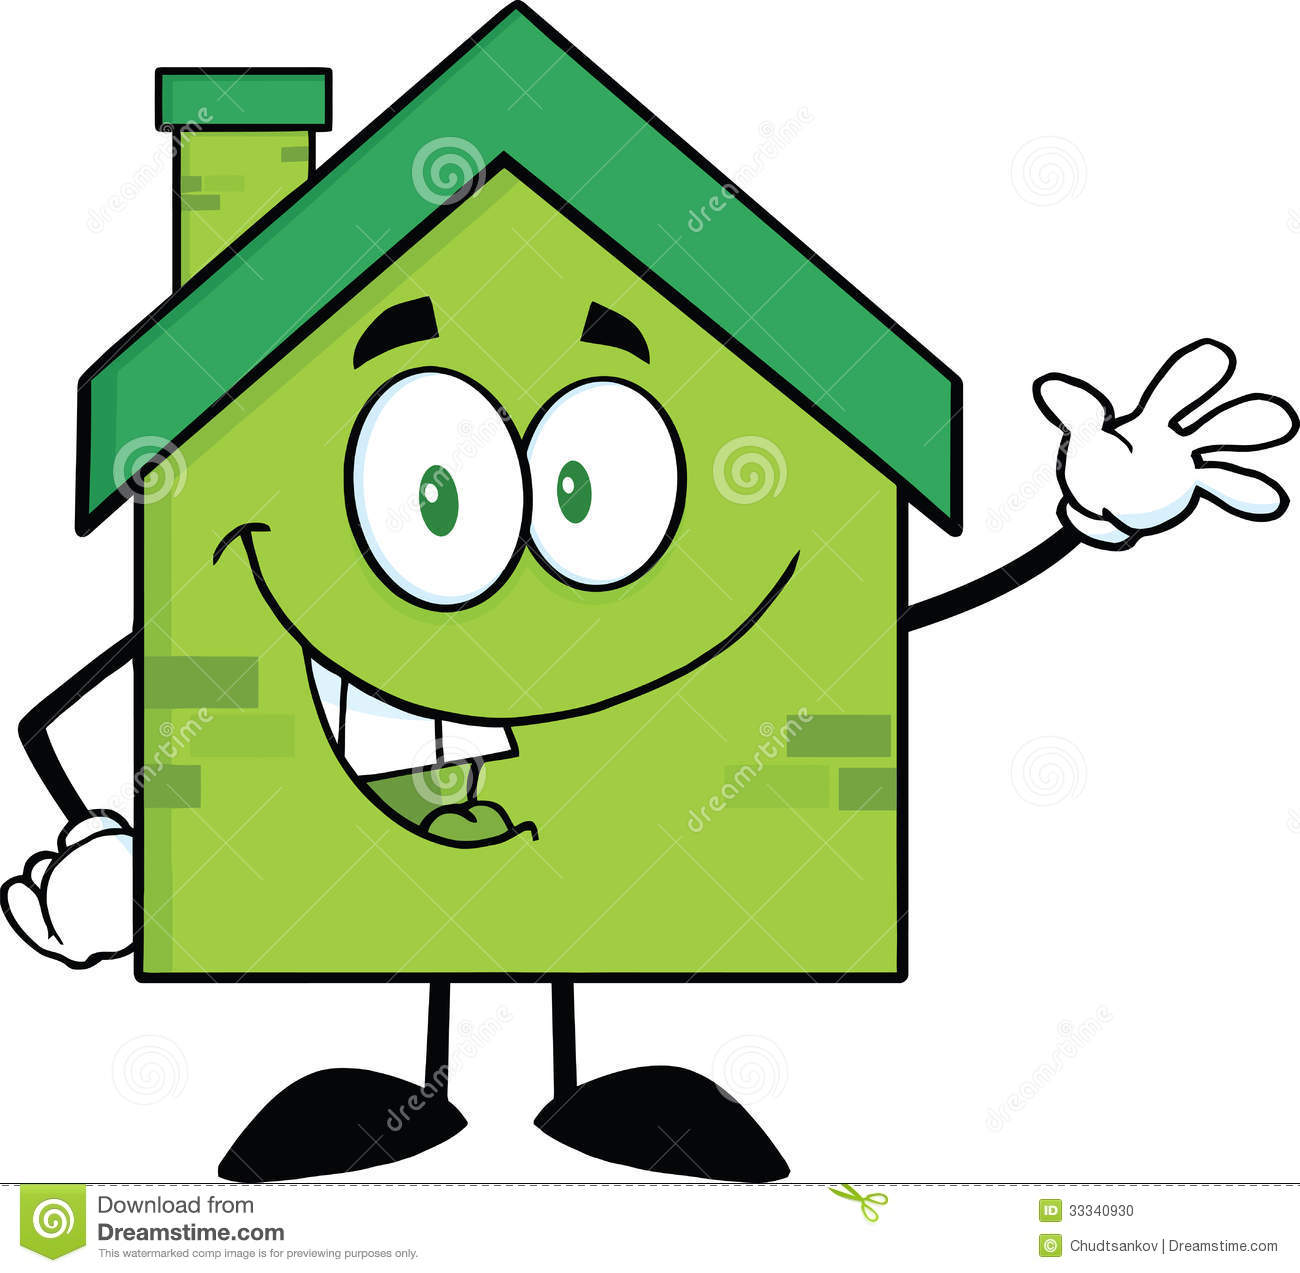 Cartoon Characters Houses : Green eco house cartoon character waving for greeting